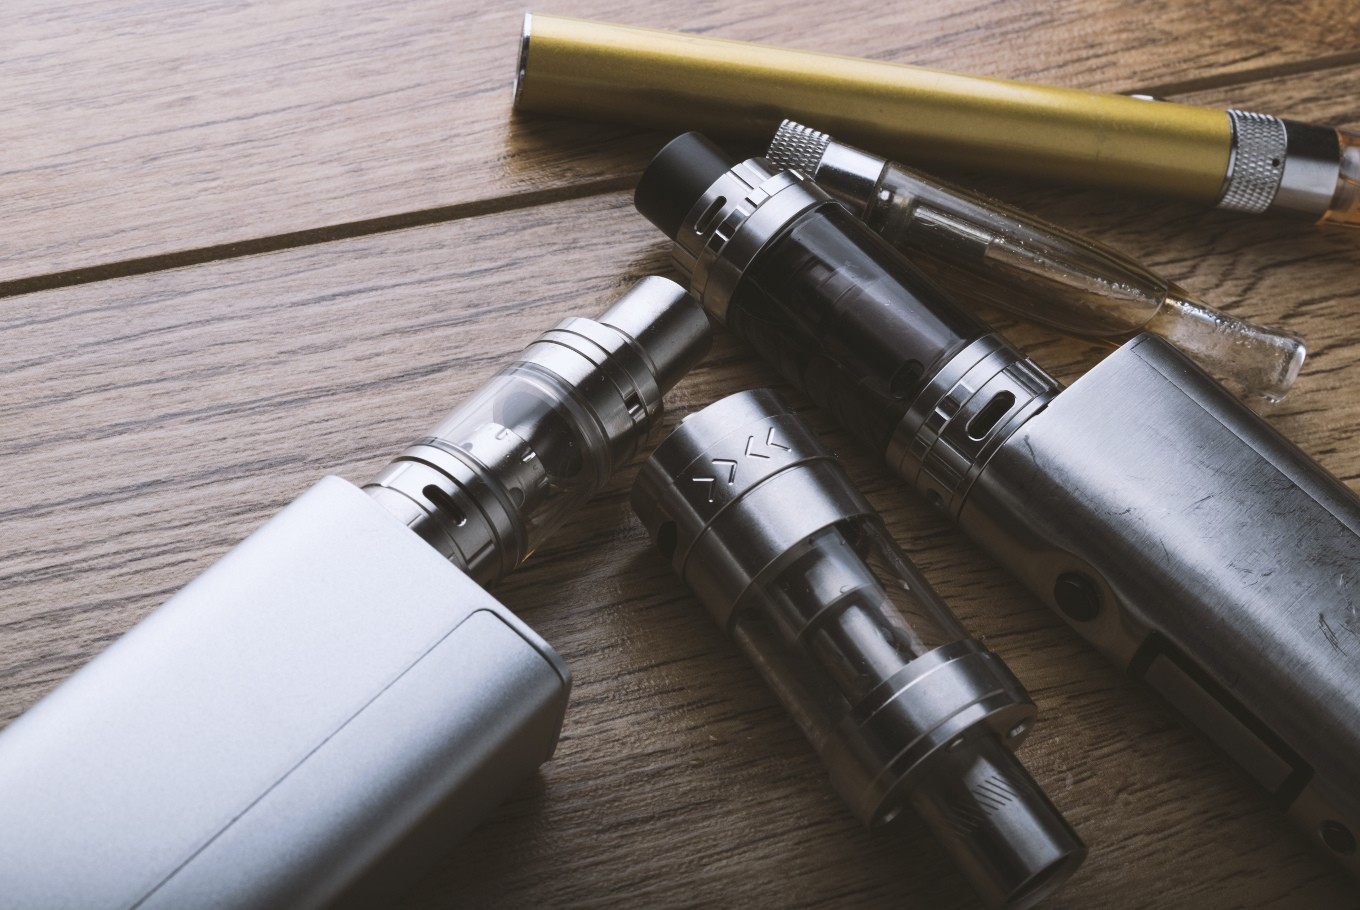 WHO says e-cigarettes 'undoubtedly harmful'